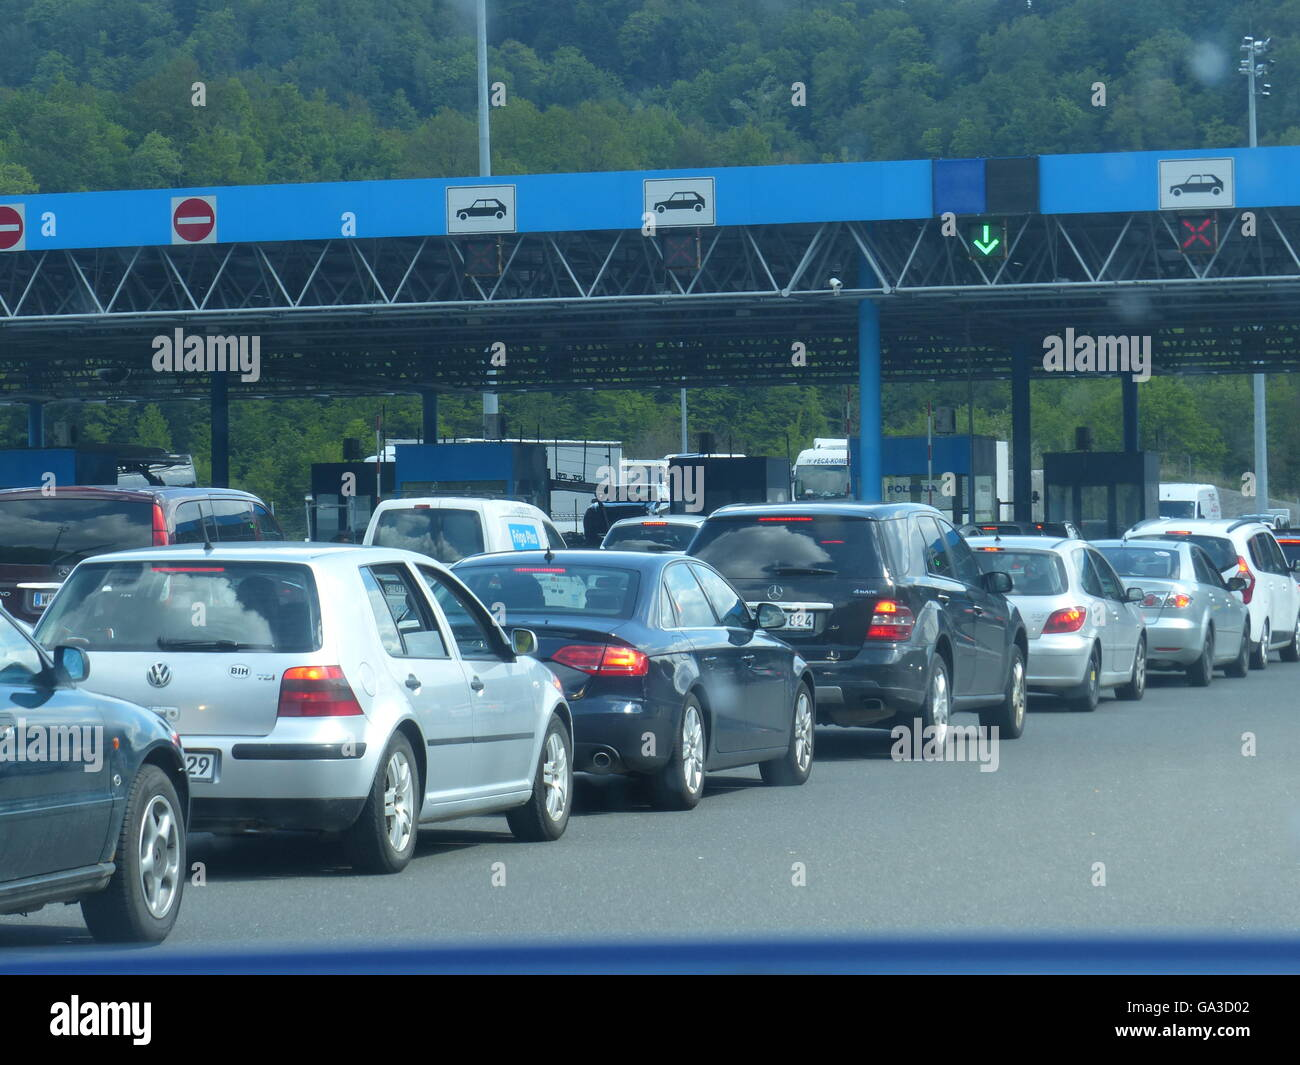 Cars lined up for customs inspection,Croatia - Stock Image